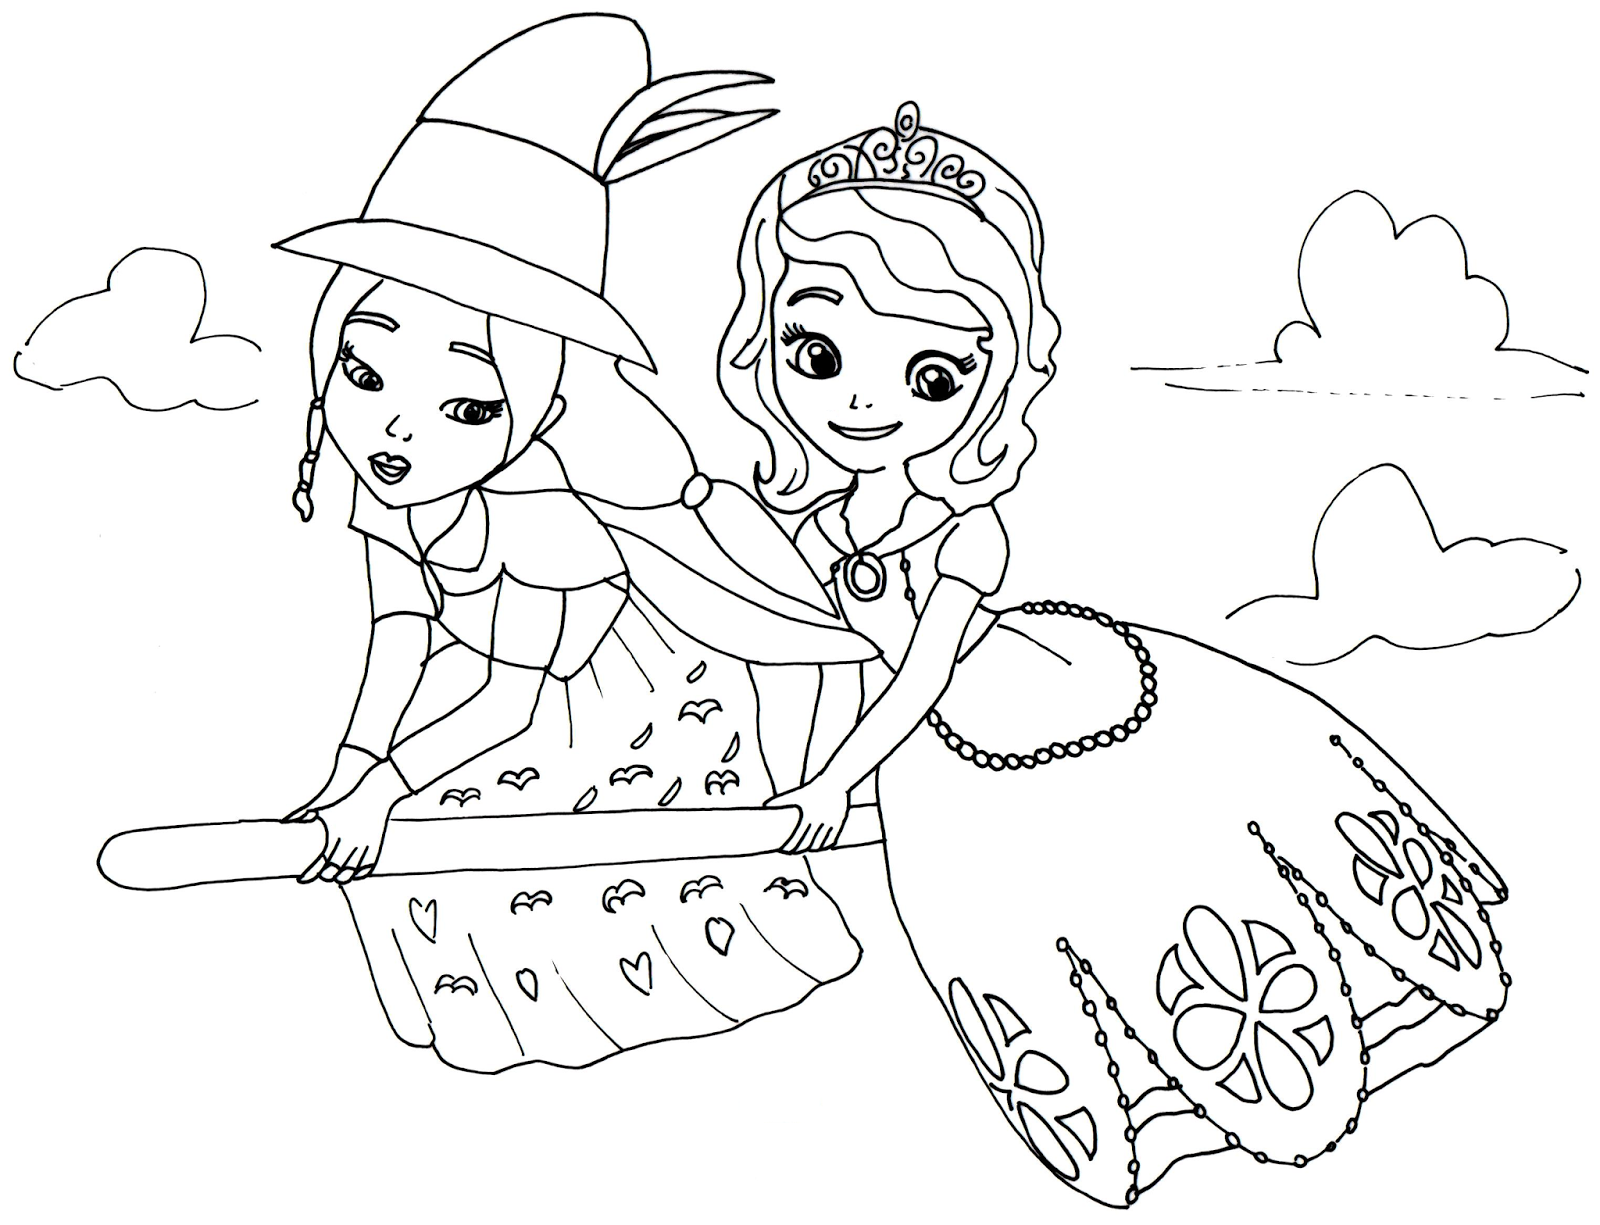 Sofia The First Coloring Pages Lucinda Witch Coloring Pages Disney Princess Coloring Pages Disney Coloring Pages Printables